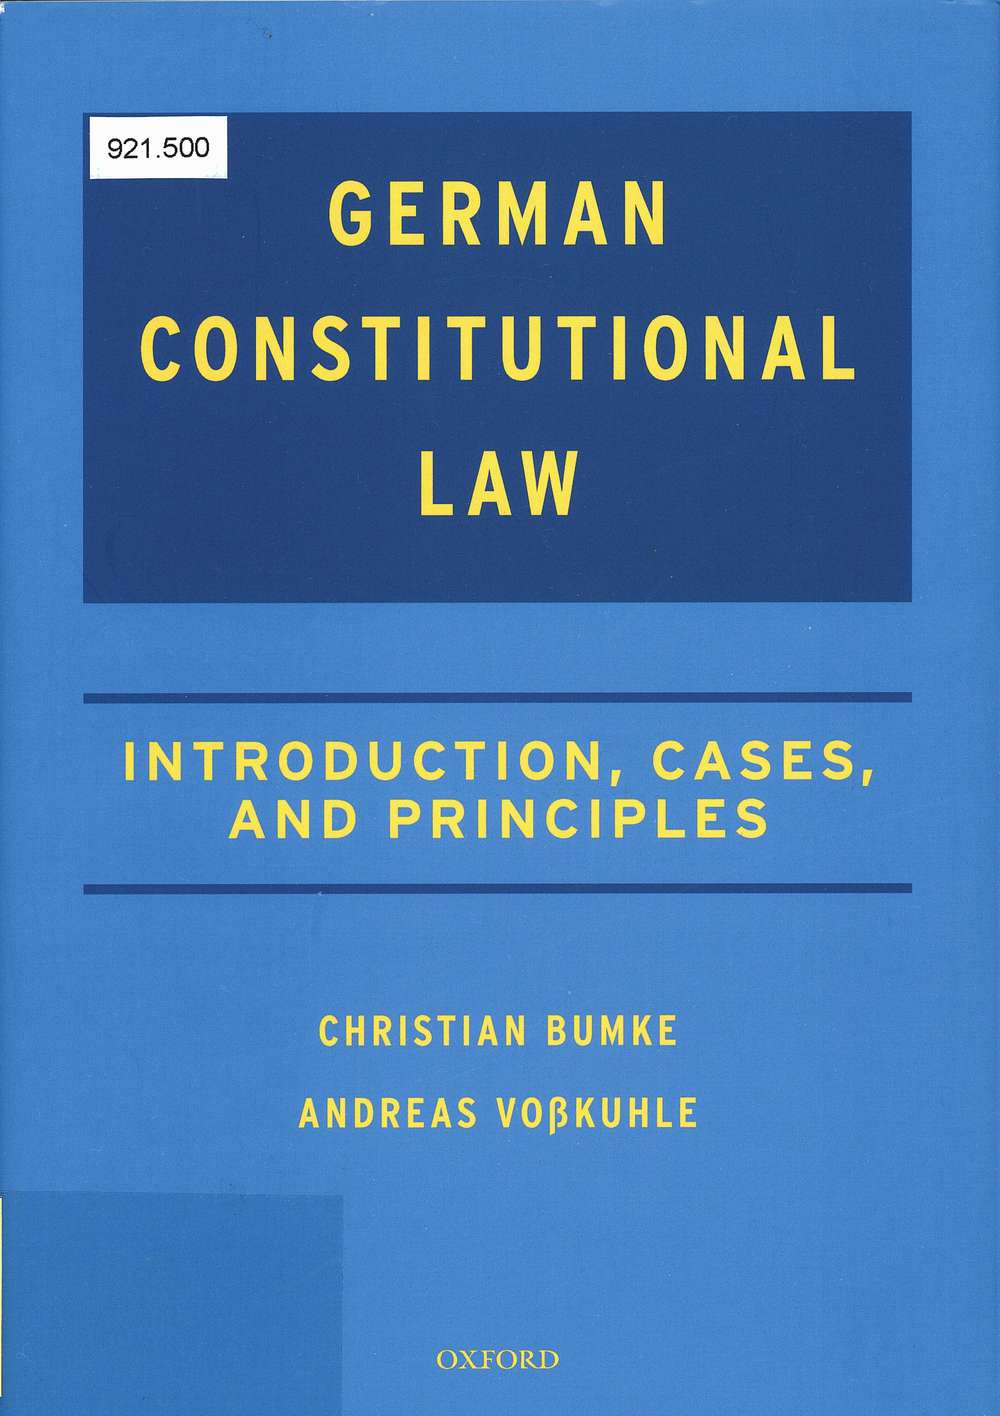 German Constitutional Law